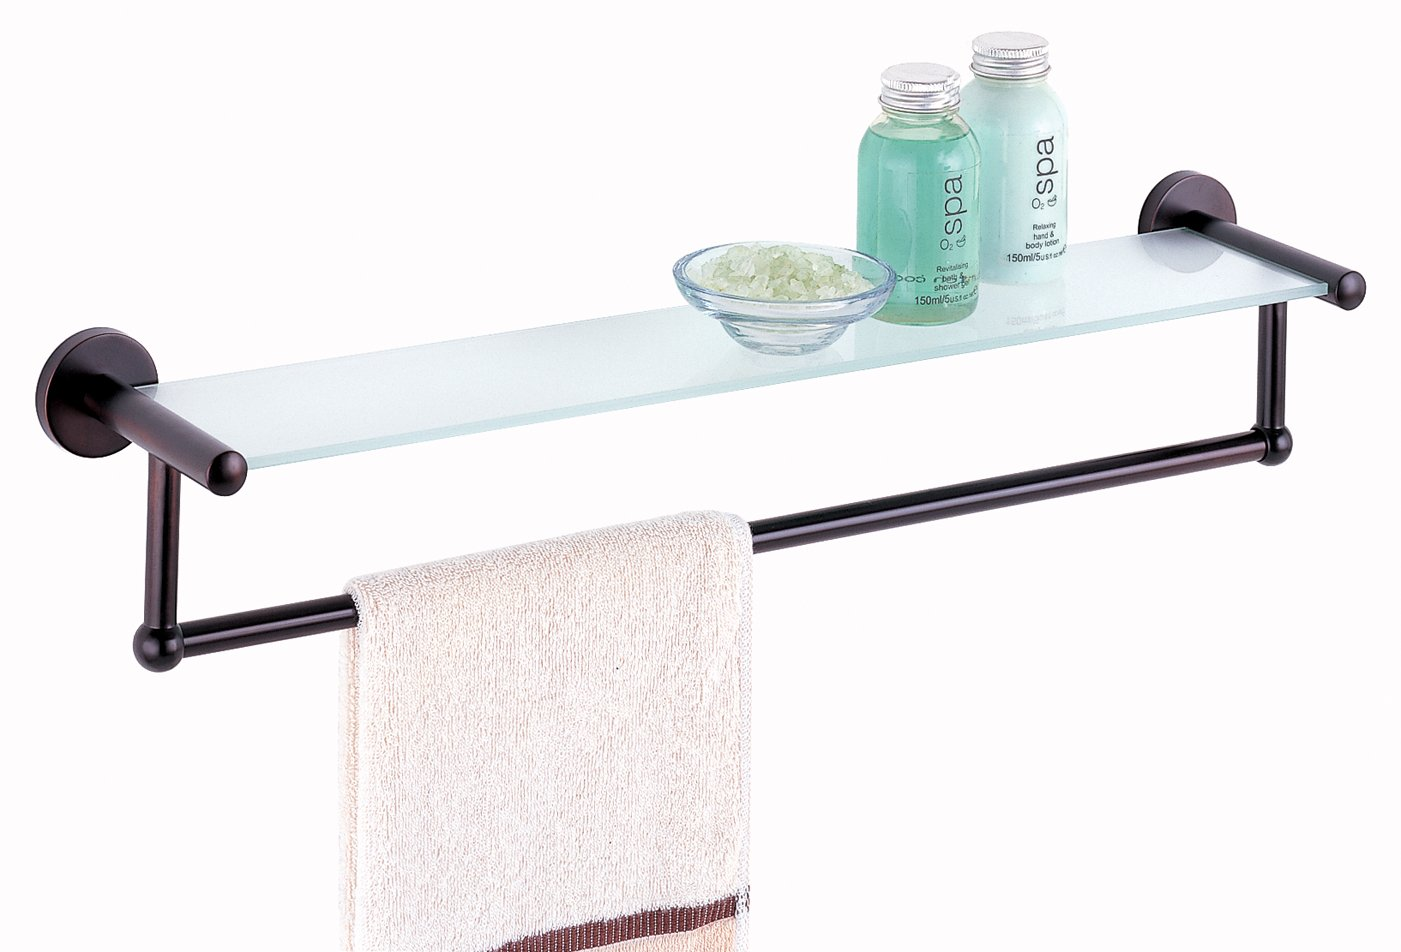 Wall mounted Towel Racks and Bar